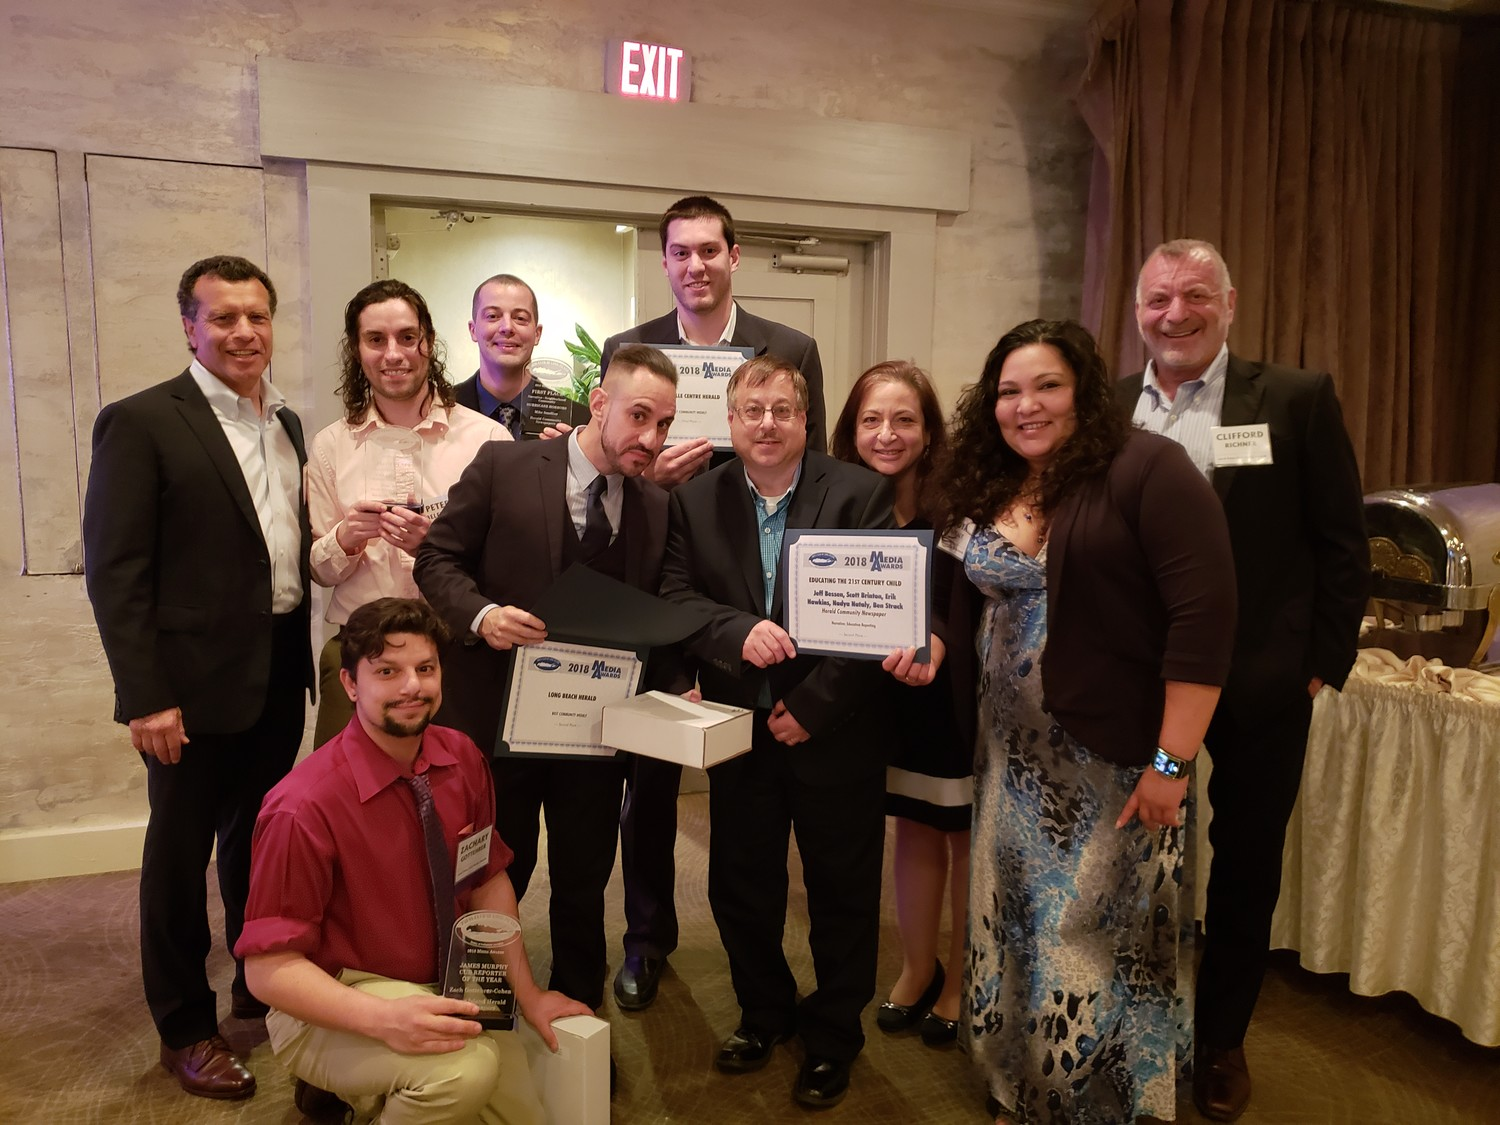 The Herald team had a blast at the Press Club of Long Island's annual Media Awards on Thursday, including, at front, kneeling, Zachary Gottehrer-Cohen, and, back row, from left, Stuart Richner, Peter Belfiore, Mike Smollins, Tony Rifilato, Ben Strack (at back), Jeff Bessen, Eden Laikin, Nadya Nataly and Clifford Richner. Missing was Hawkins, and Scott Brinton, who, as PCLI's incoming president, was helping to run the awards show throughout the evening.